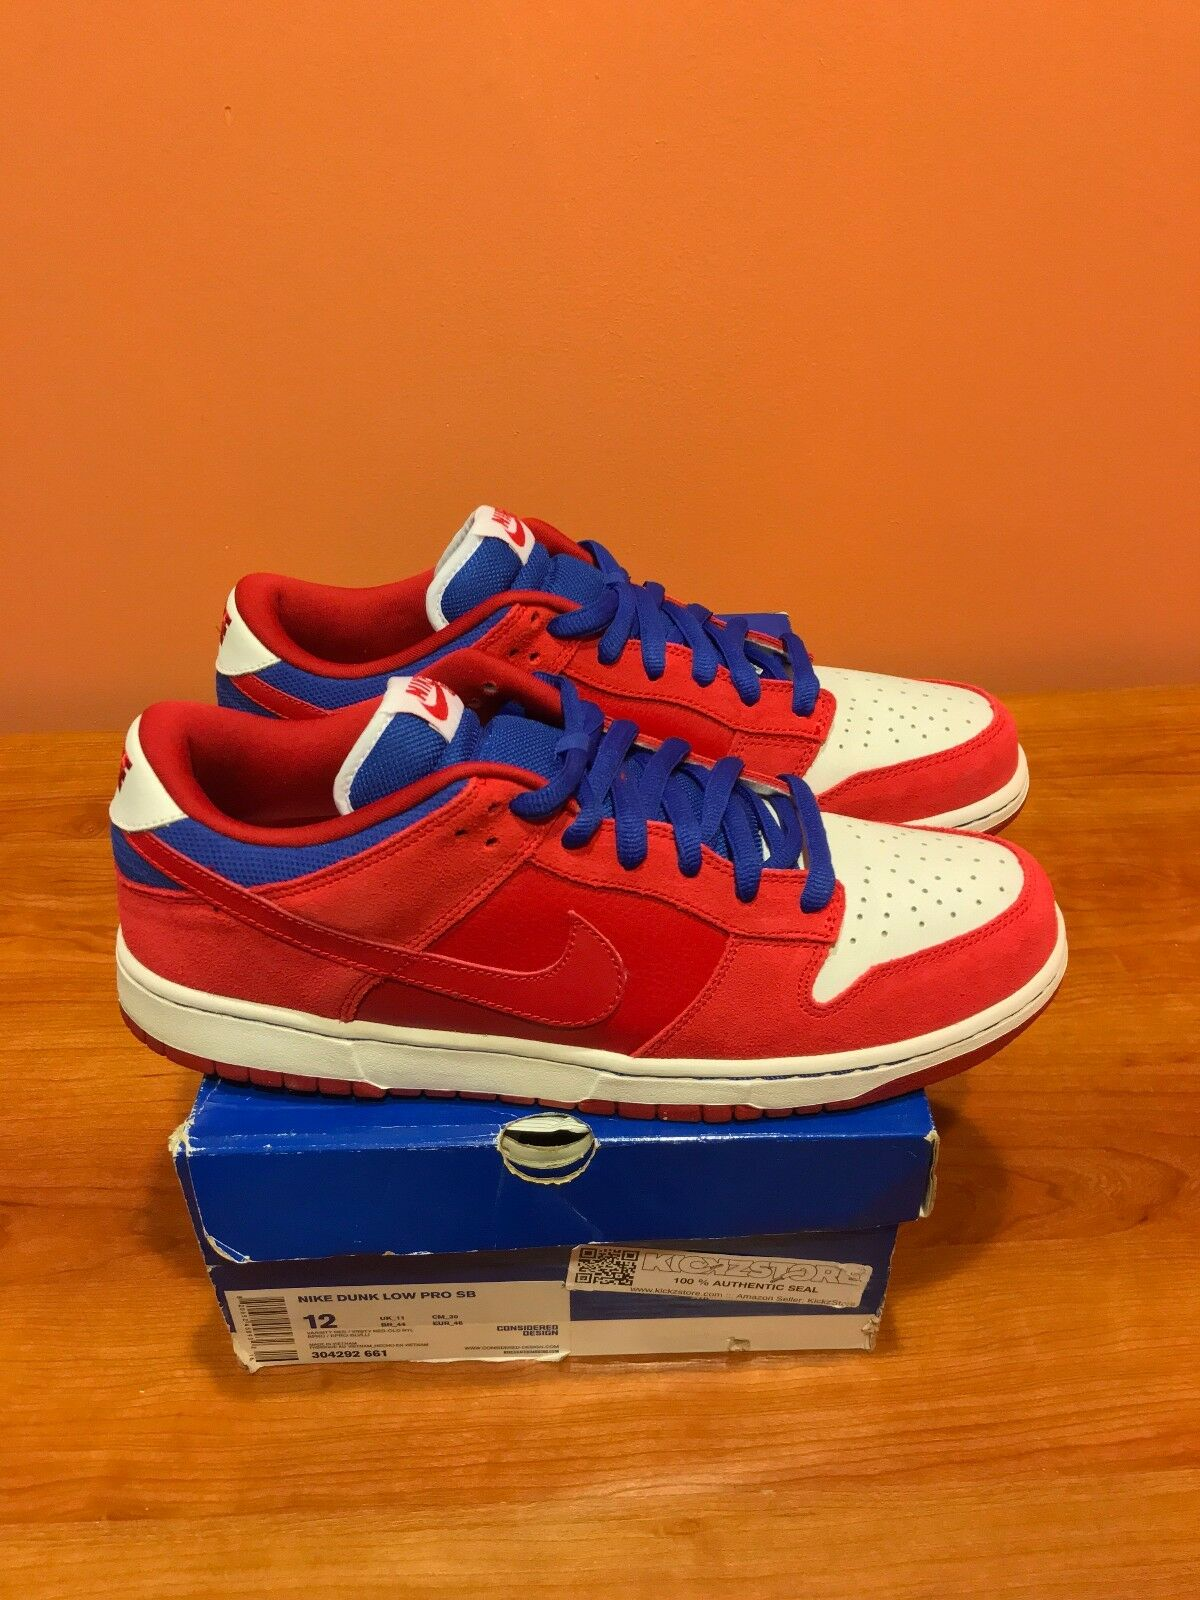 Nike SB Dunk Low – Red – Royal Blue – White – Sample - Limited Edition - DS